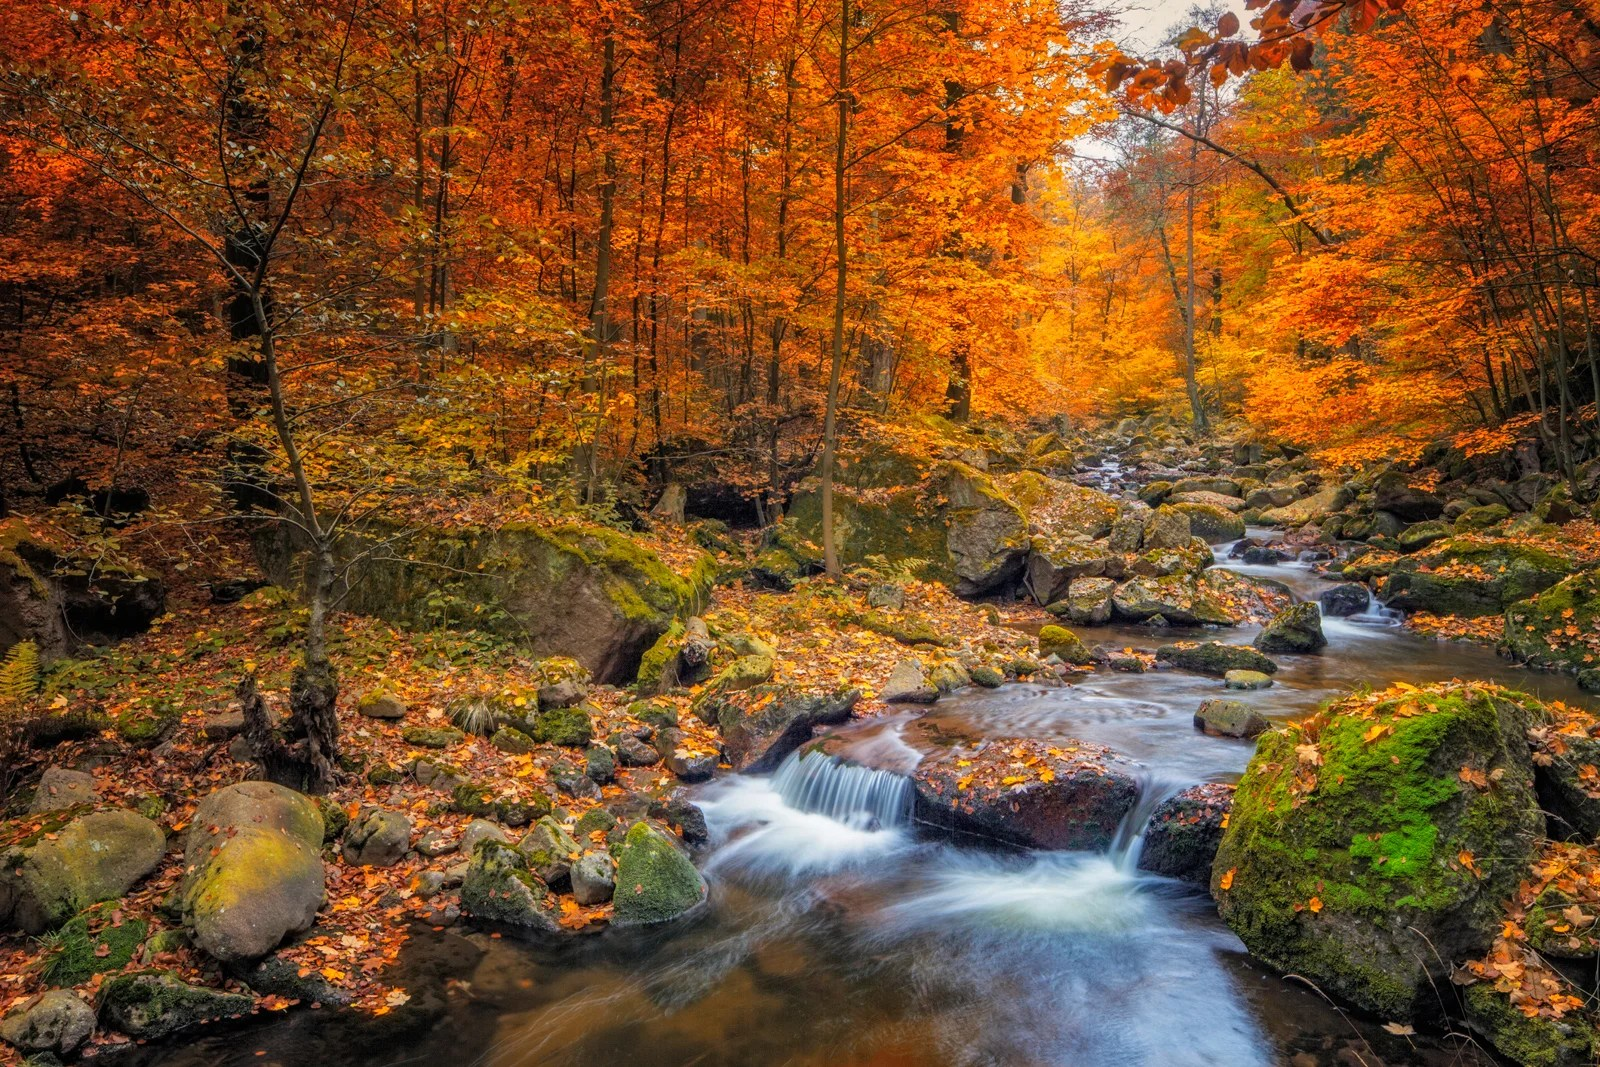 11 beautiful cities in Europe to admire autumn foliage